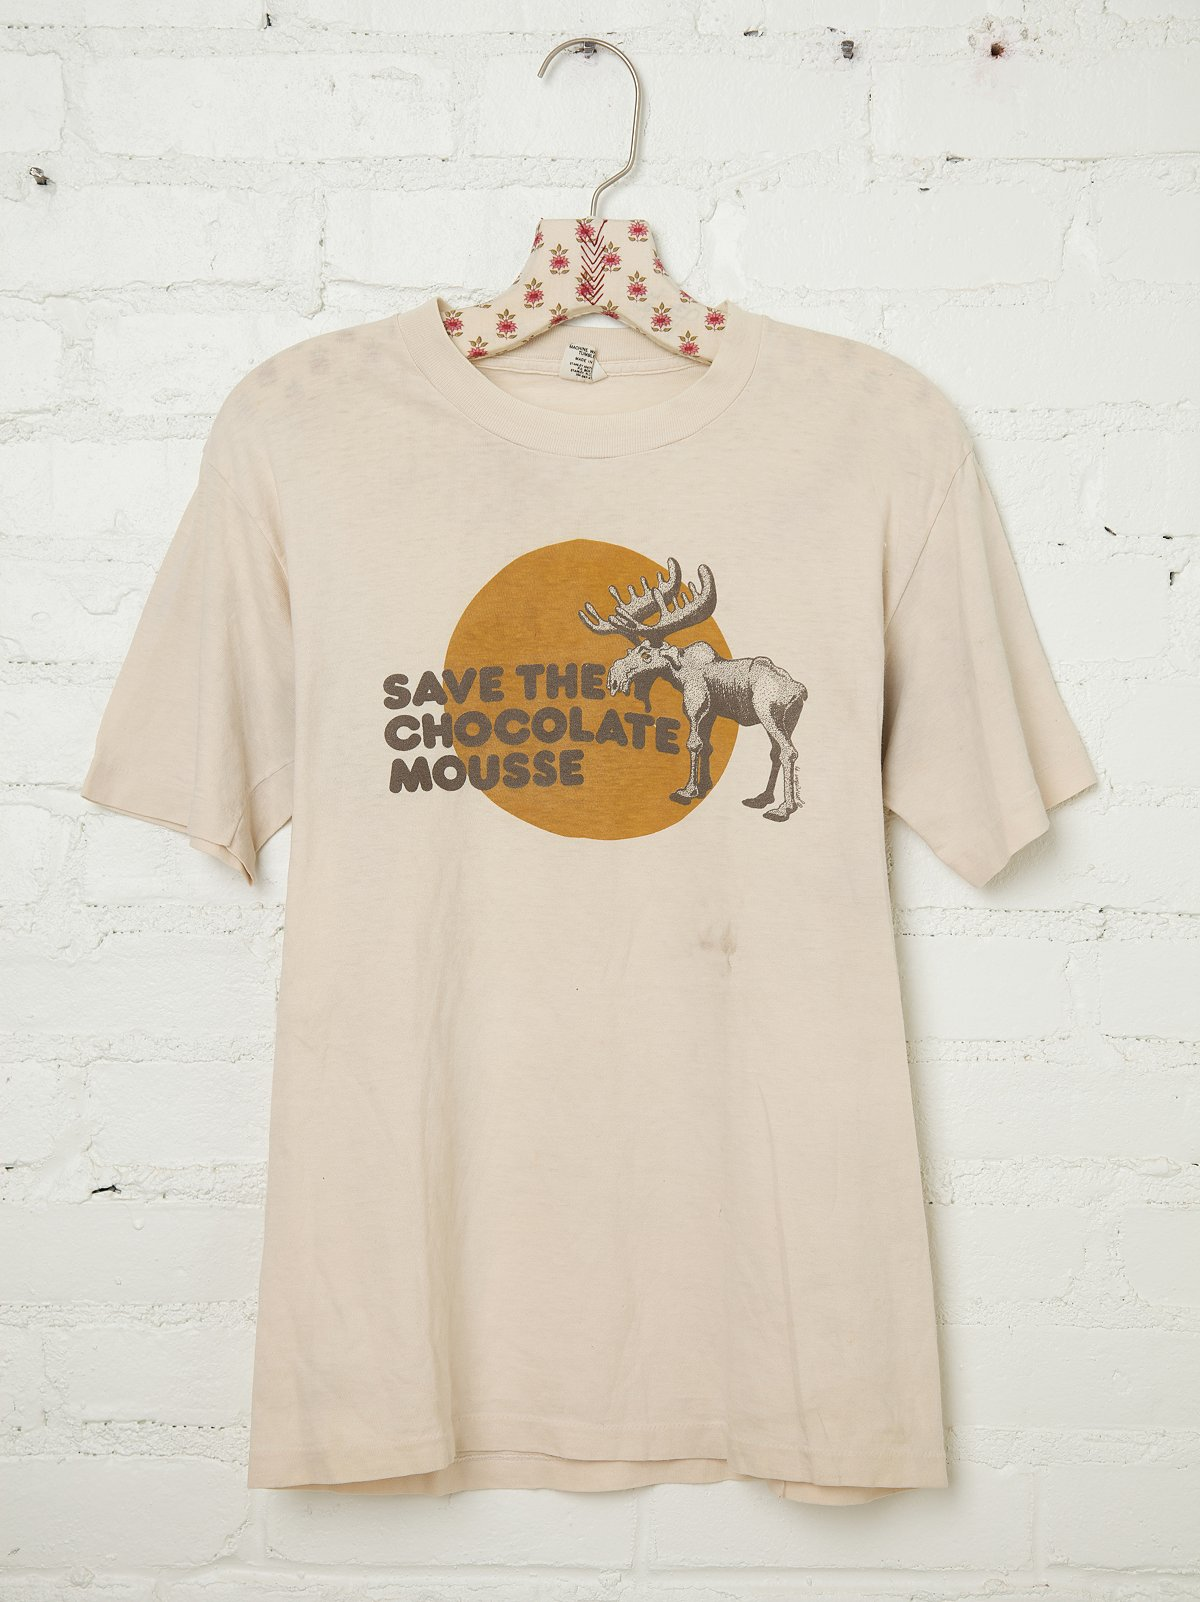 Vintage Save the Chocolate Mousse Tee